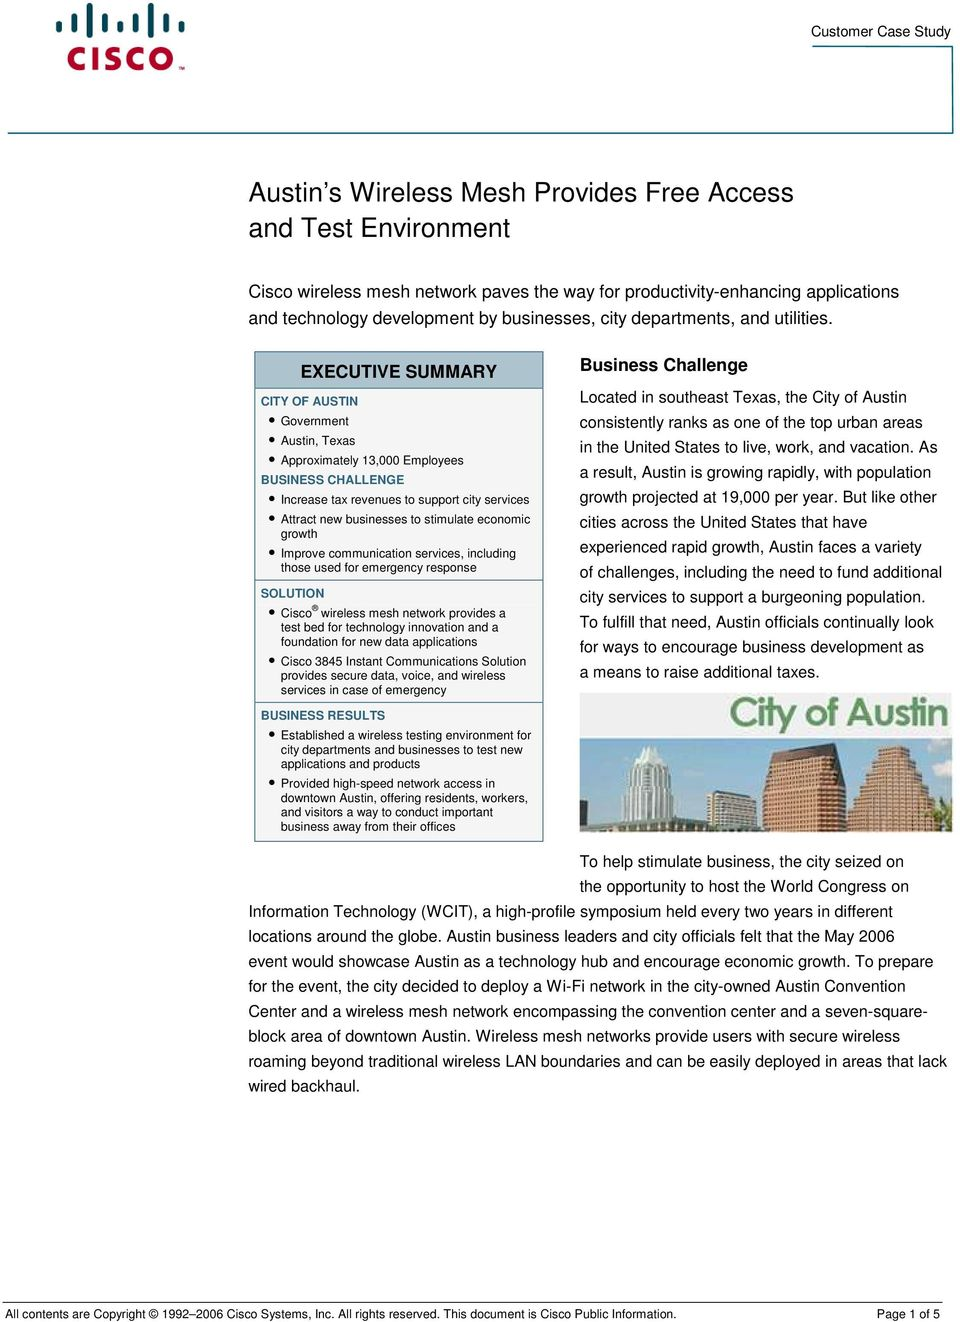 EXECUTIVE SUMMARY CITY OF AUSTIN Government Austin, Texas Approximately 13,000 Employees BUSINESS CHALLENGE Increase tax revenues to support city services Attract new businesses to stimulate economic